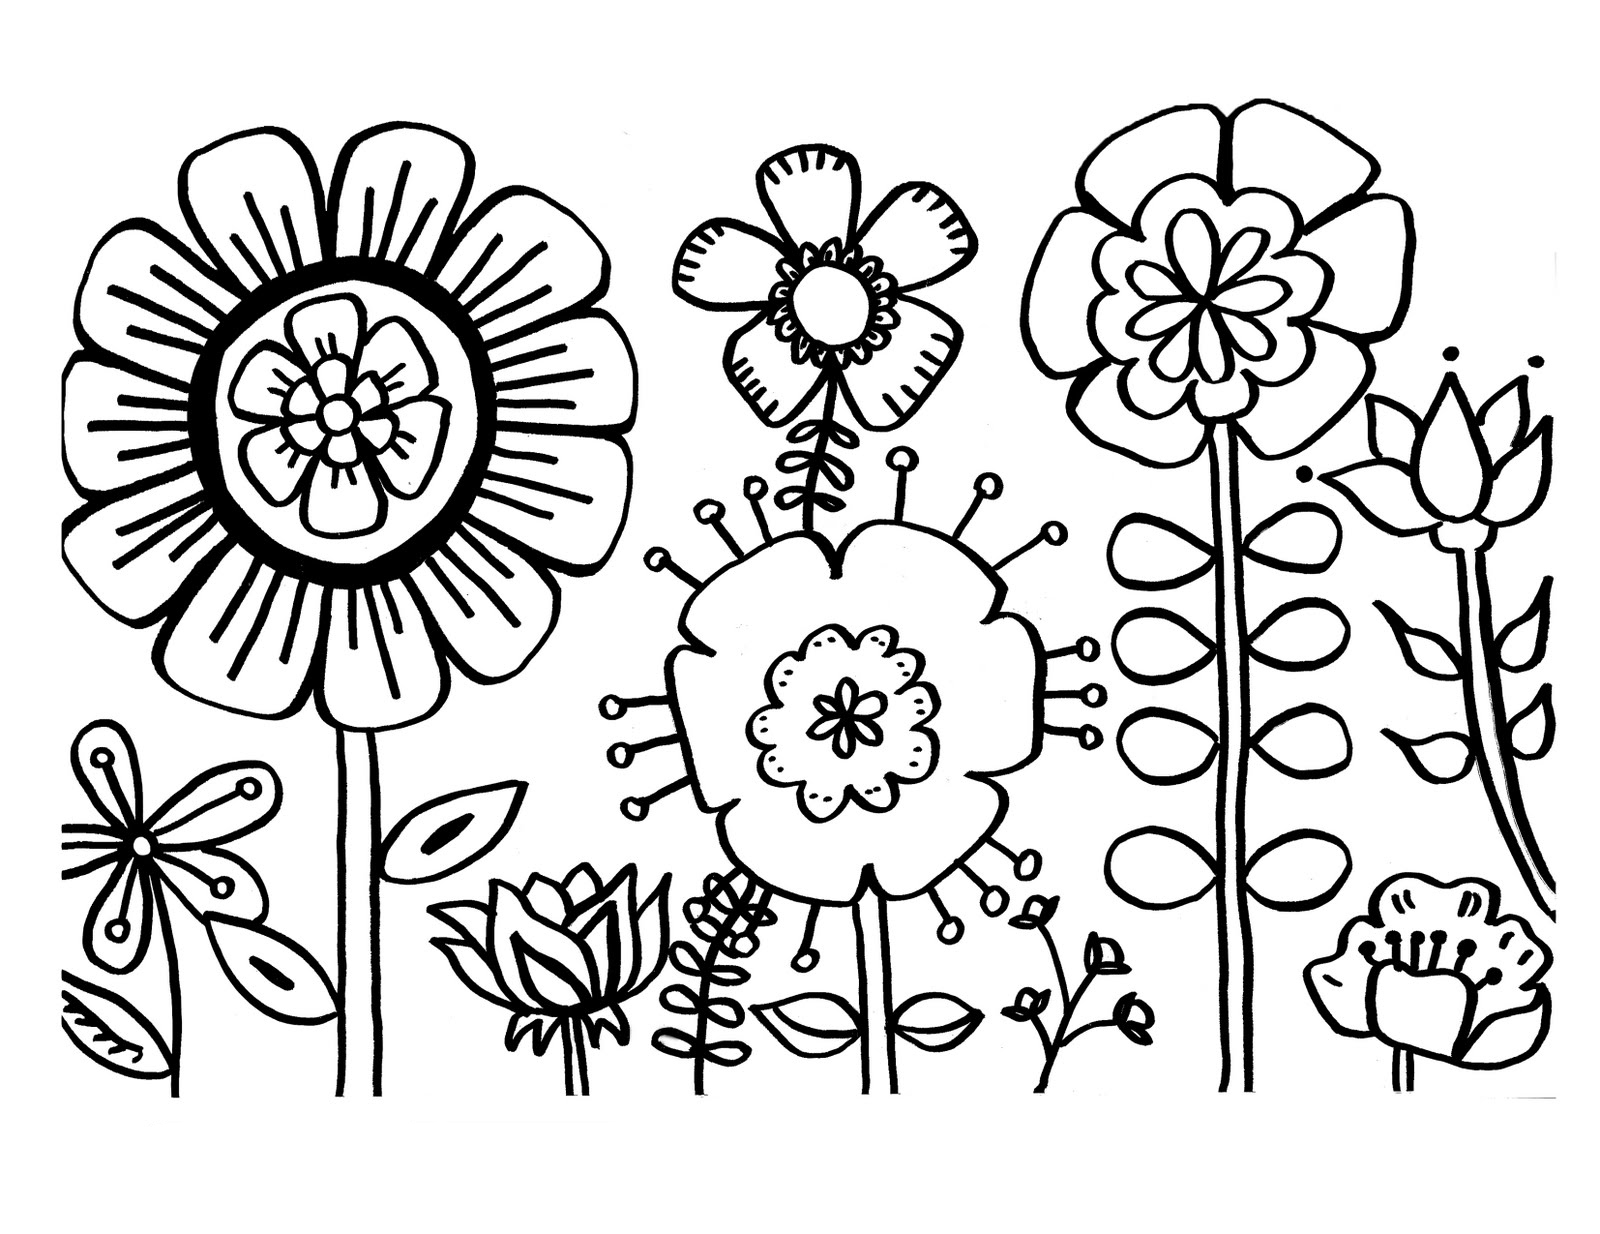 pictures of flowers to color free printable flower coloring pages for kids best flowers to pictures color of